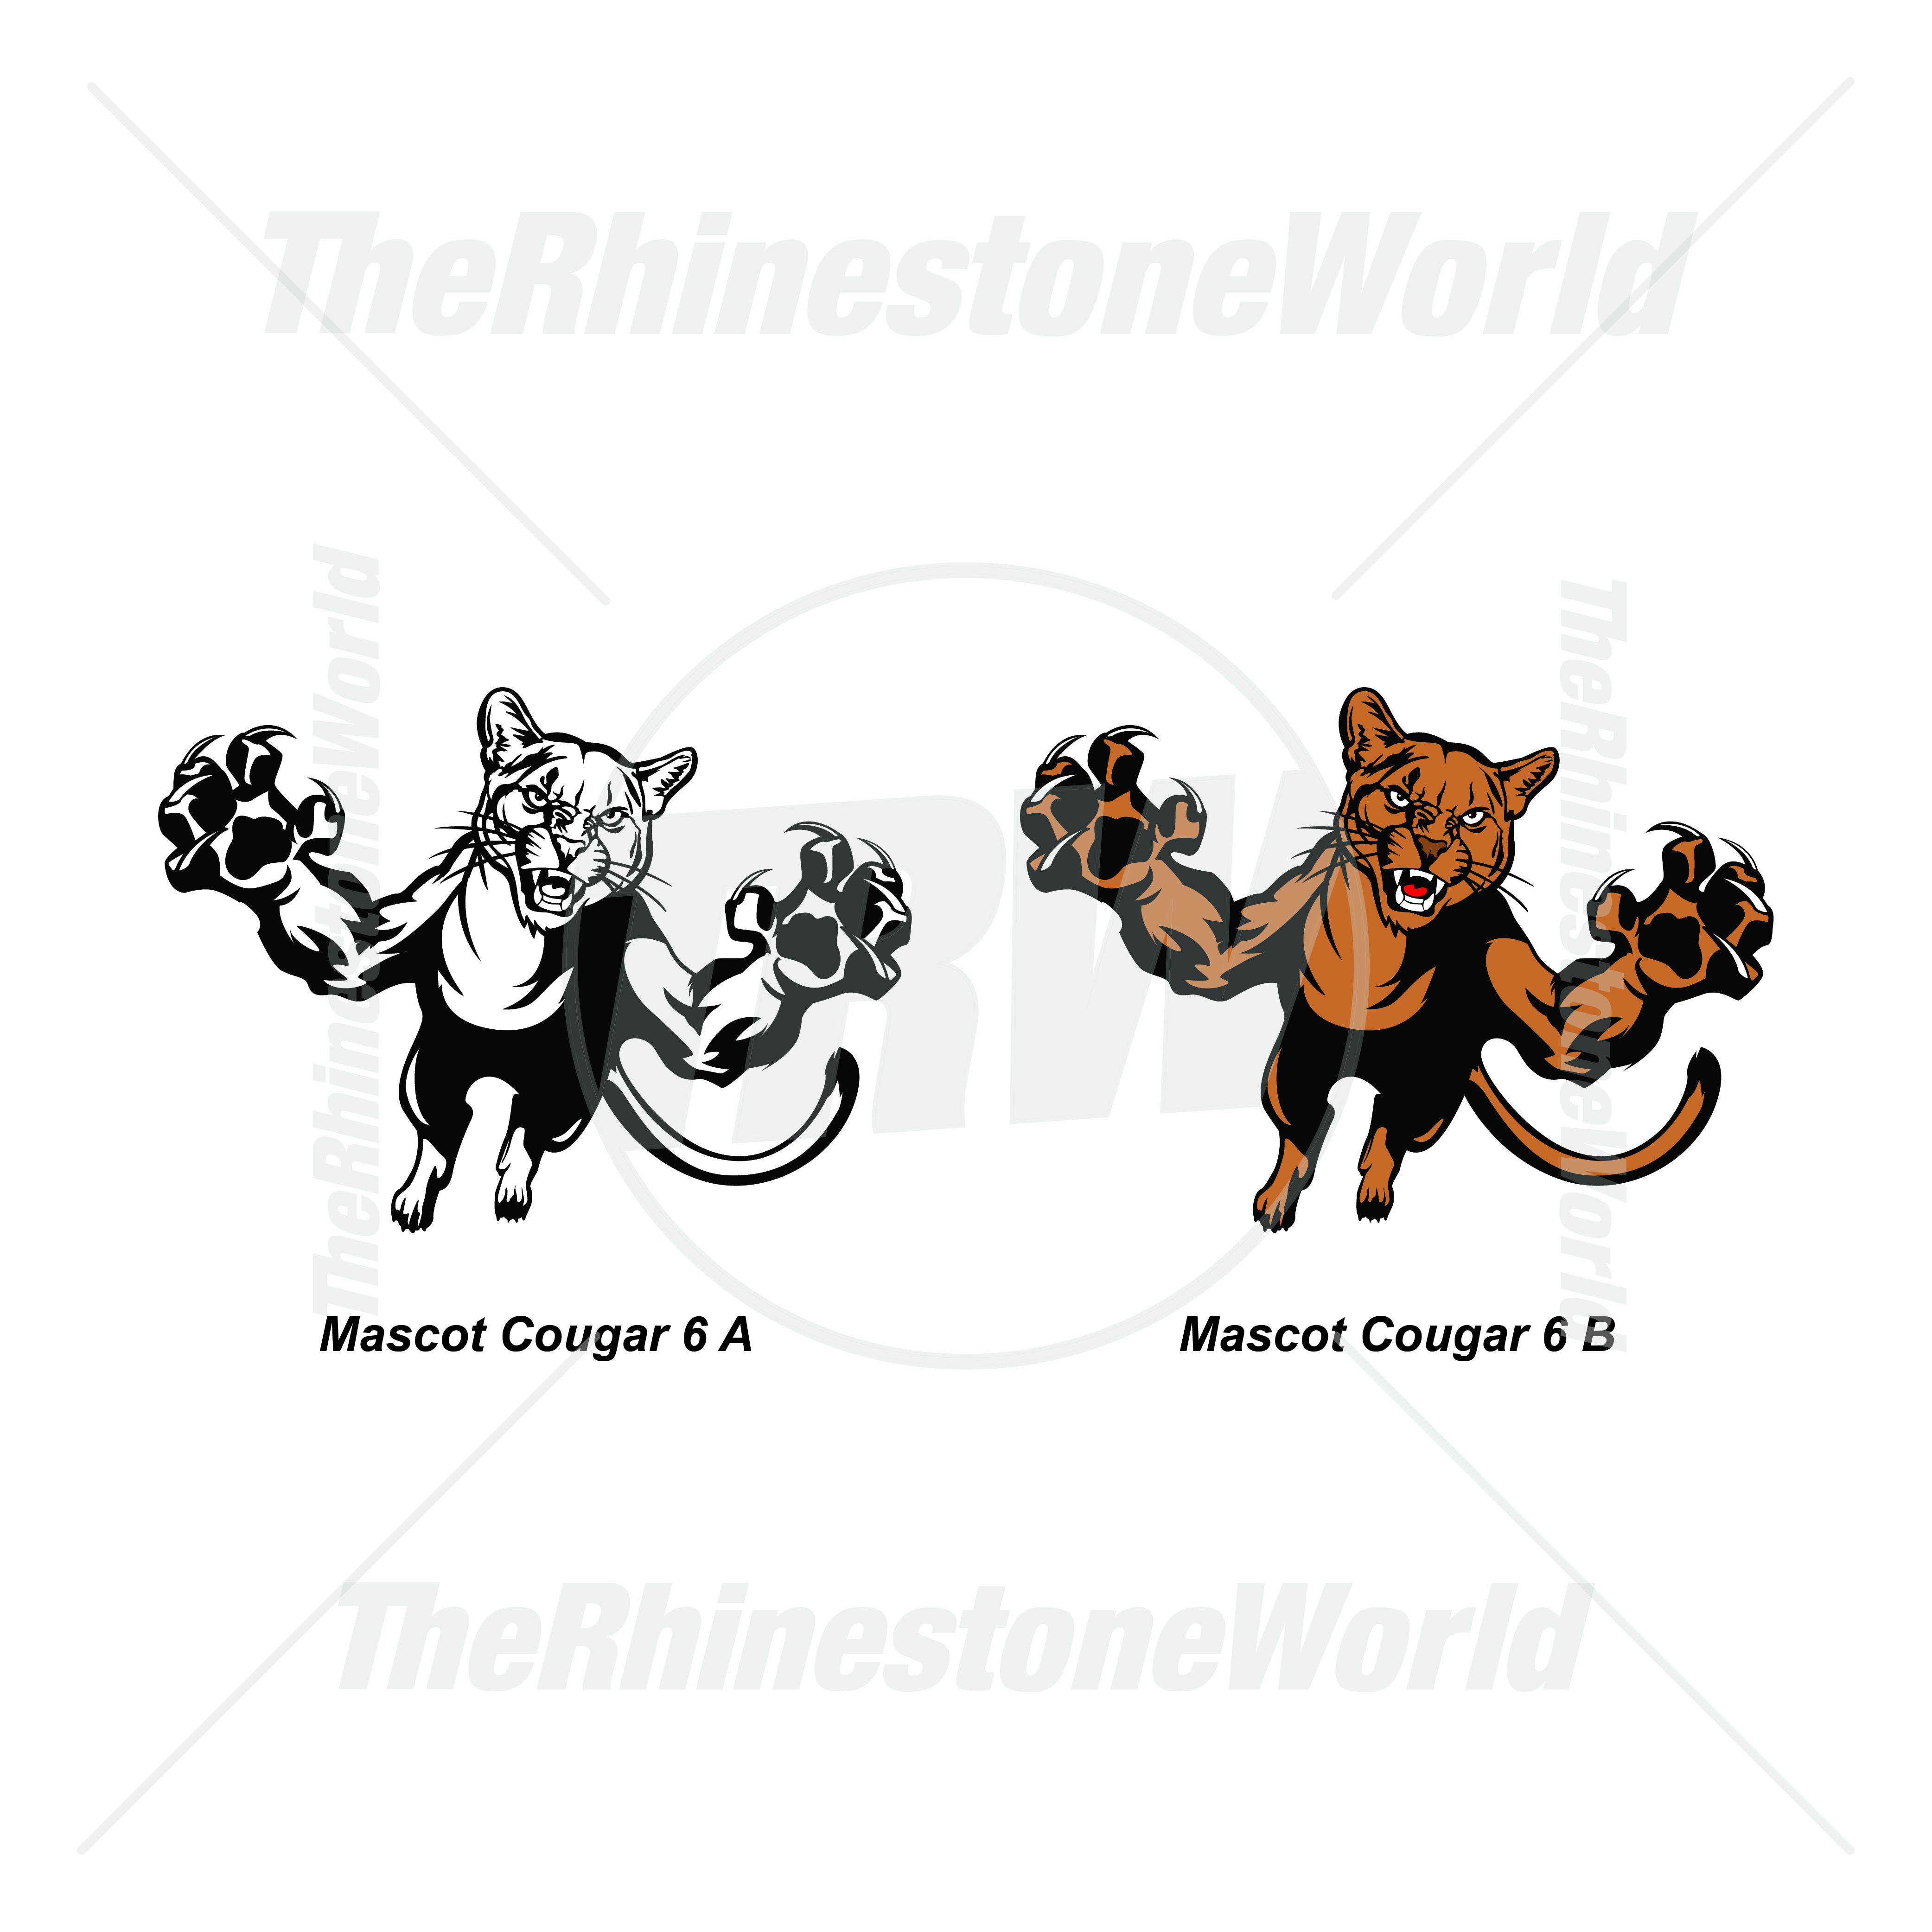 TRW Mascot Cougars 6 - Download